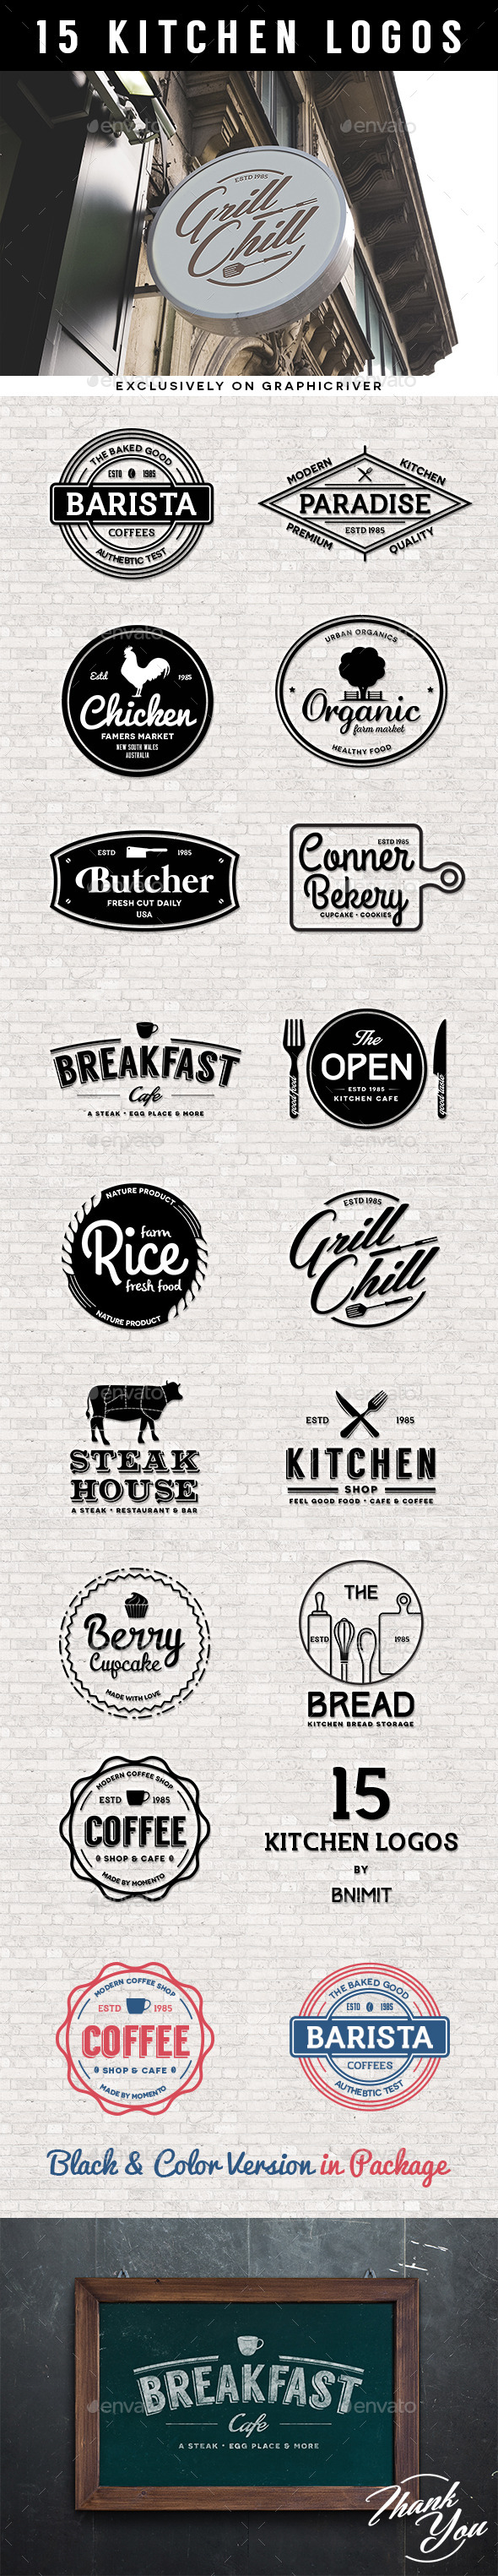 GraphicRiver 15 Kitchen logos 10889428